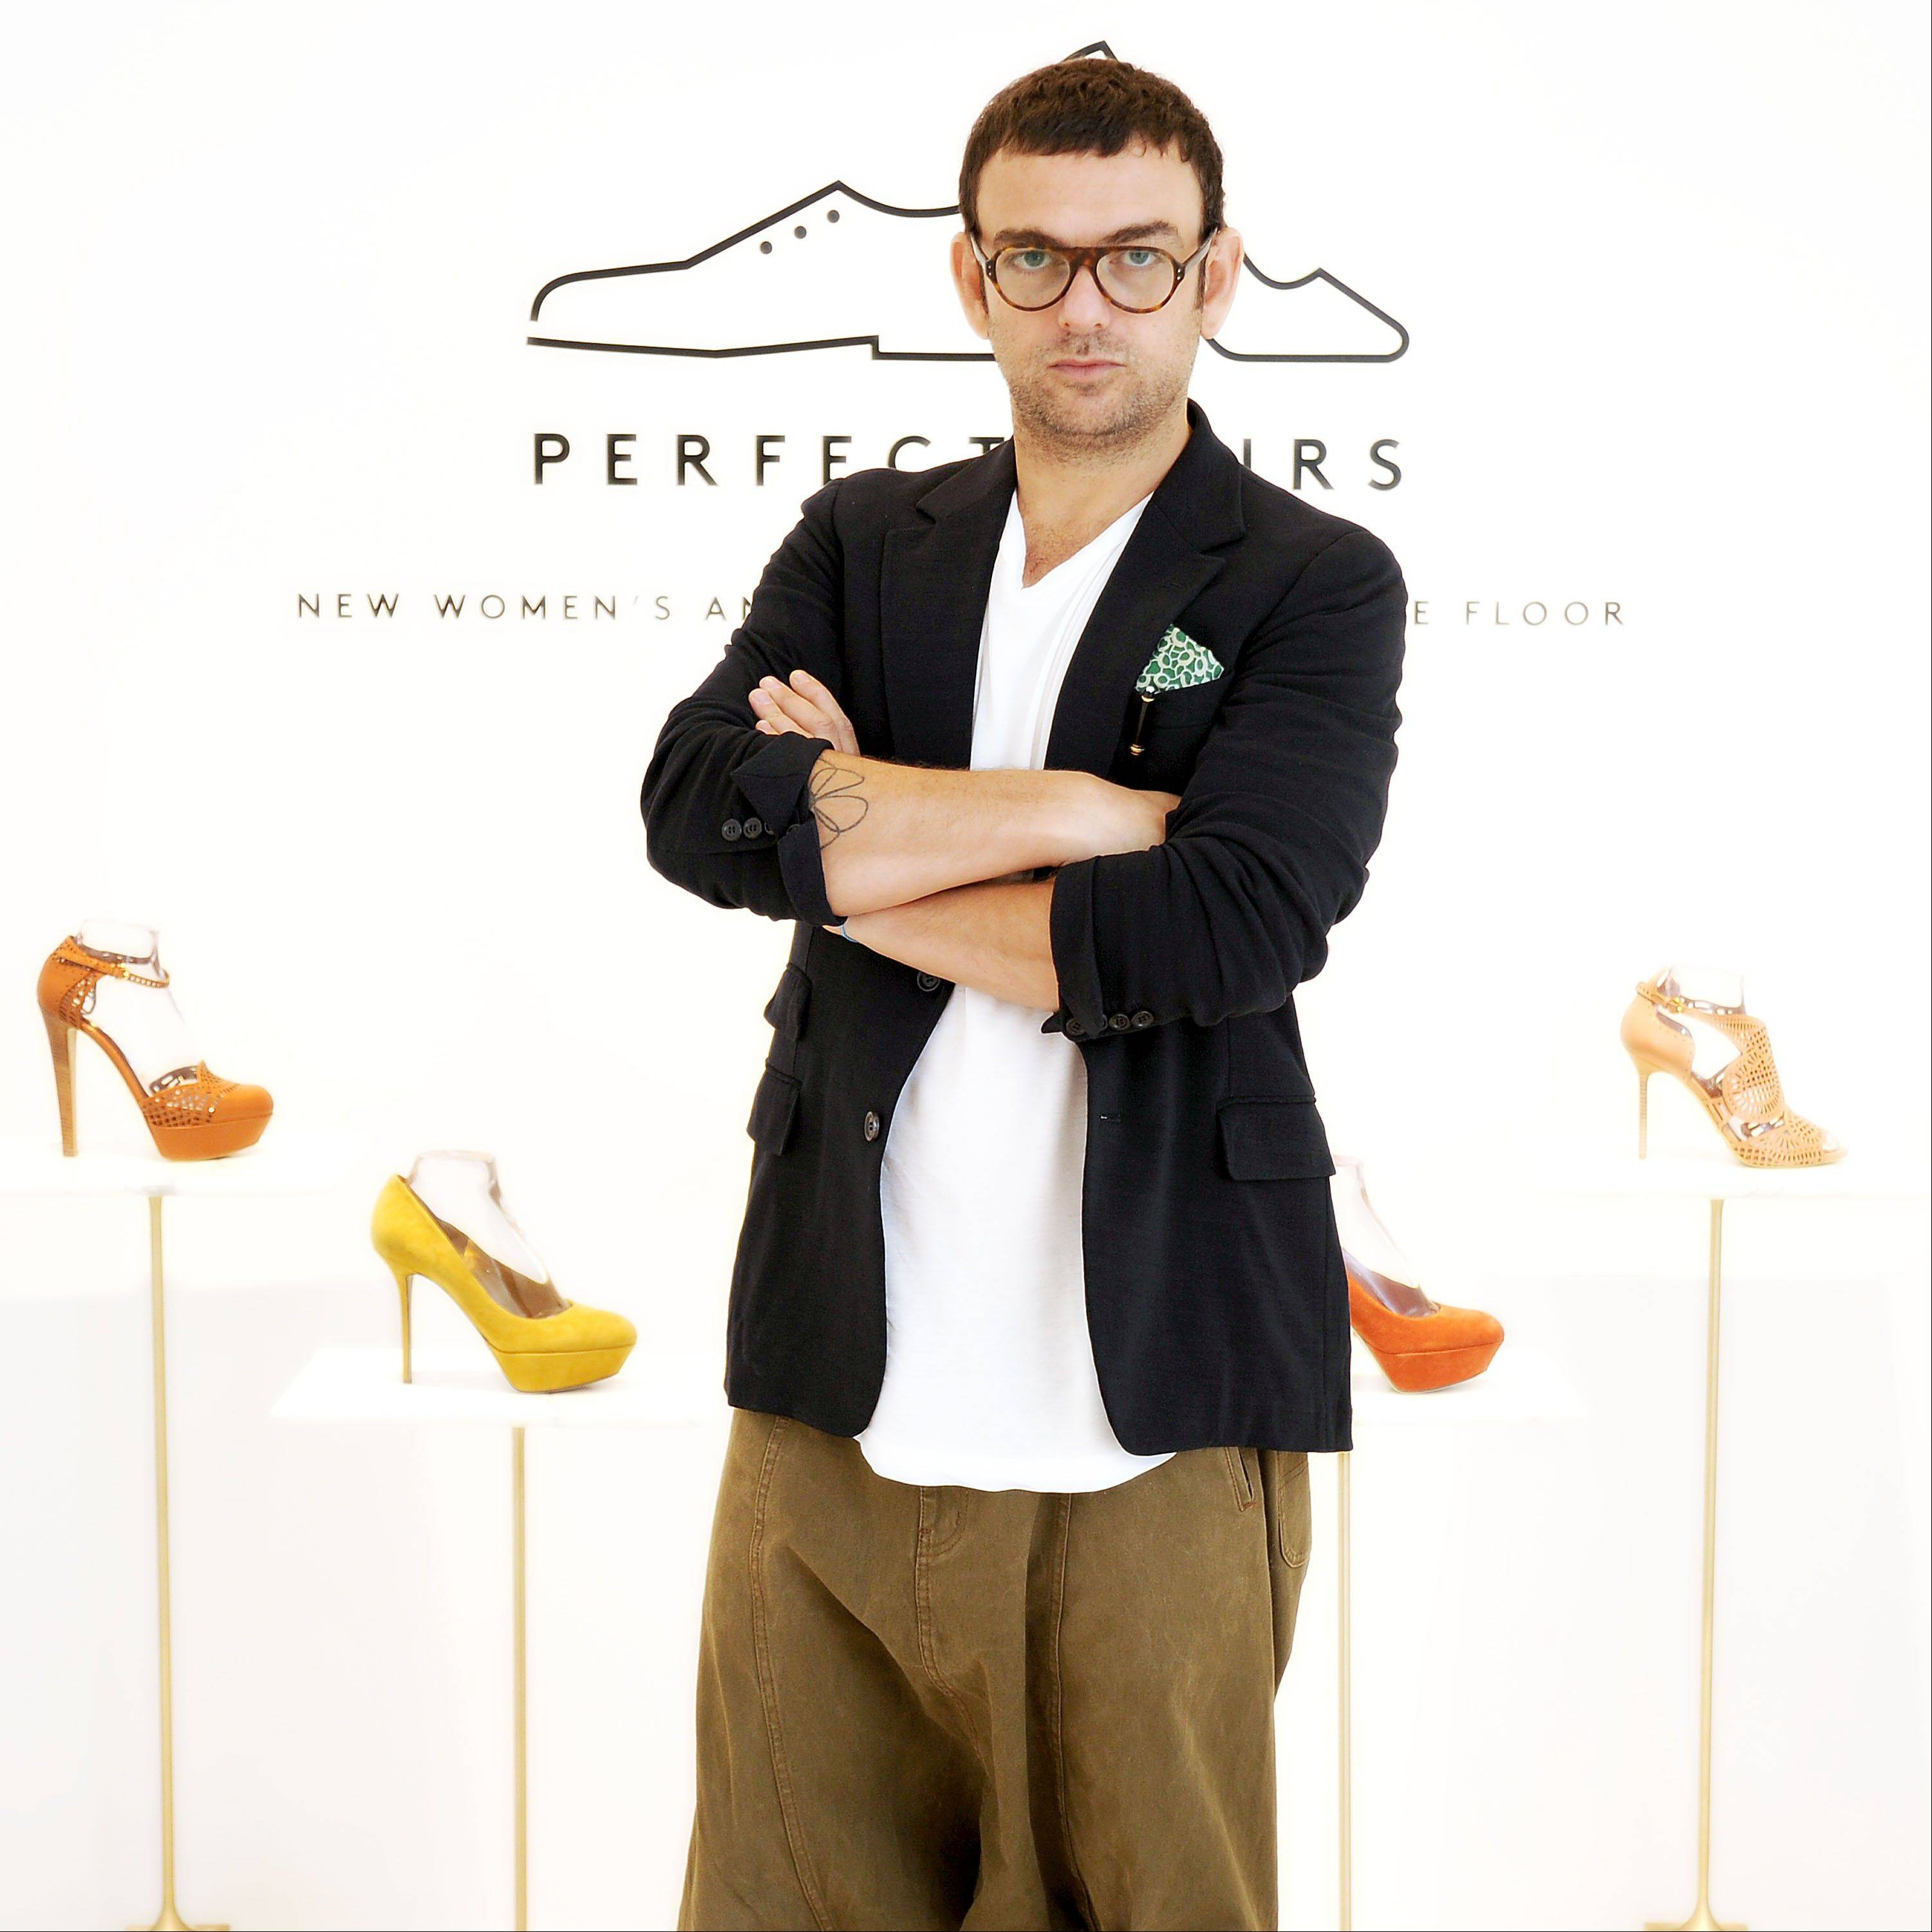 Francesco Russo, creative director for Sergio Rossi, poses in front of his fall collection at Barneys New York on July 18. Russo is flattered by the celebrities such as Anne Hathaway, Diane Kruger and Michelle Pfeiffer who wear Sergio Rossi on the red carpet, but he's in it more for the love affair he, via shoes and handbags, will make with women of all ages and lifestyles.